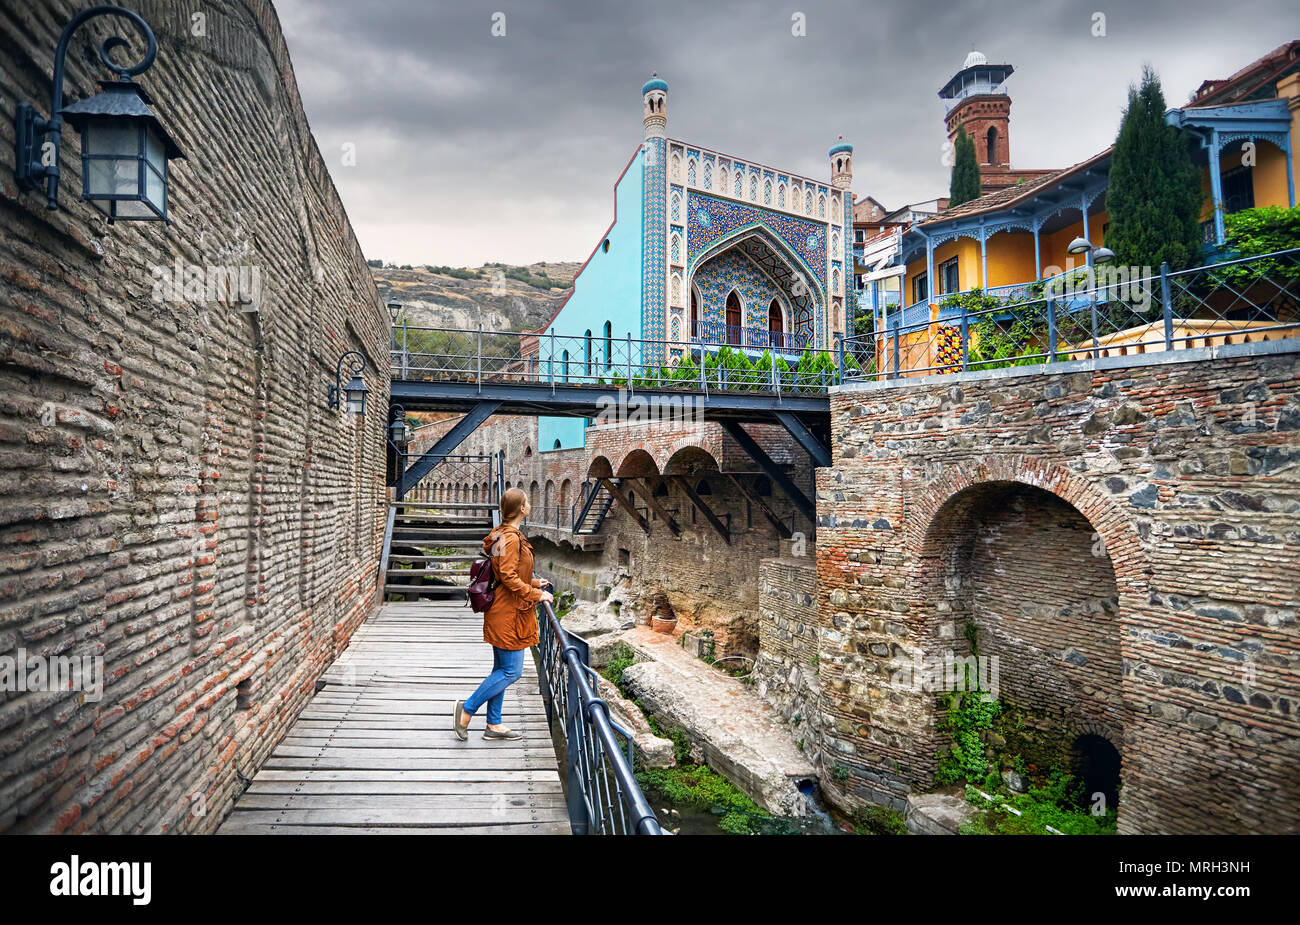 Tourist woman in brown jacket walking down the Old streets of Public Sulfuric bath district in central Tbilisi, Georgia - Stock Image